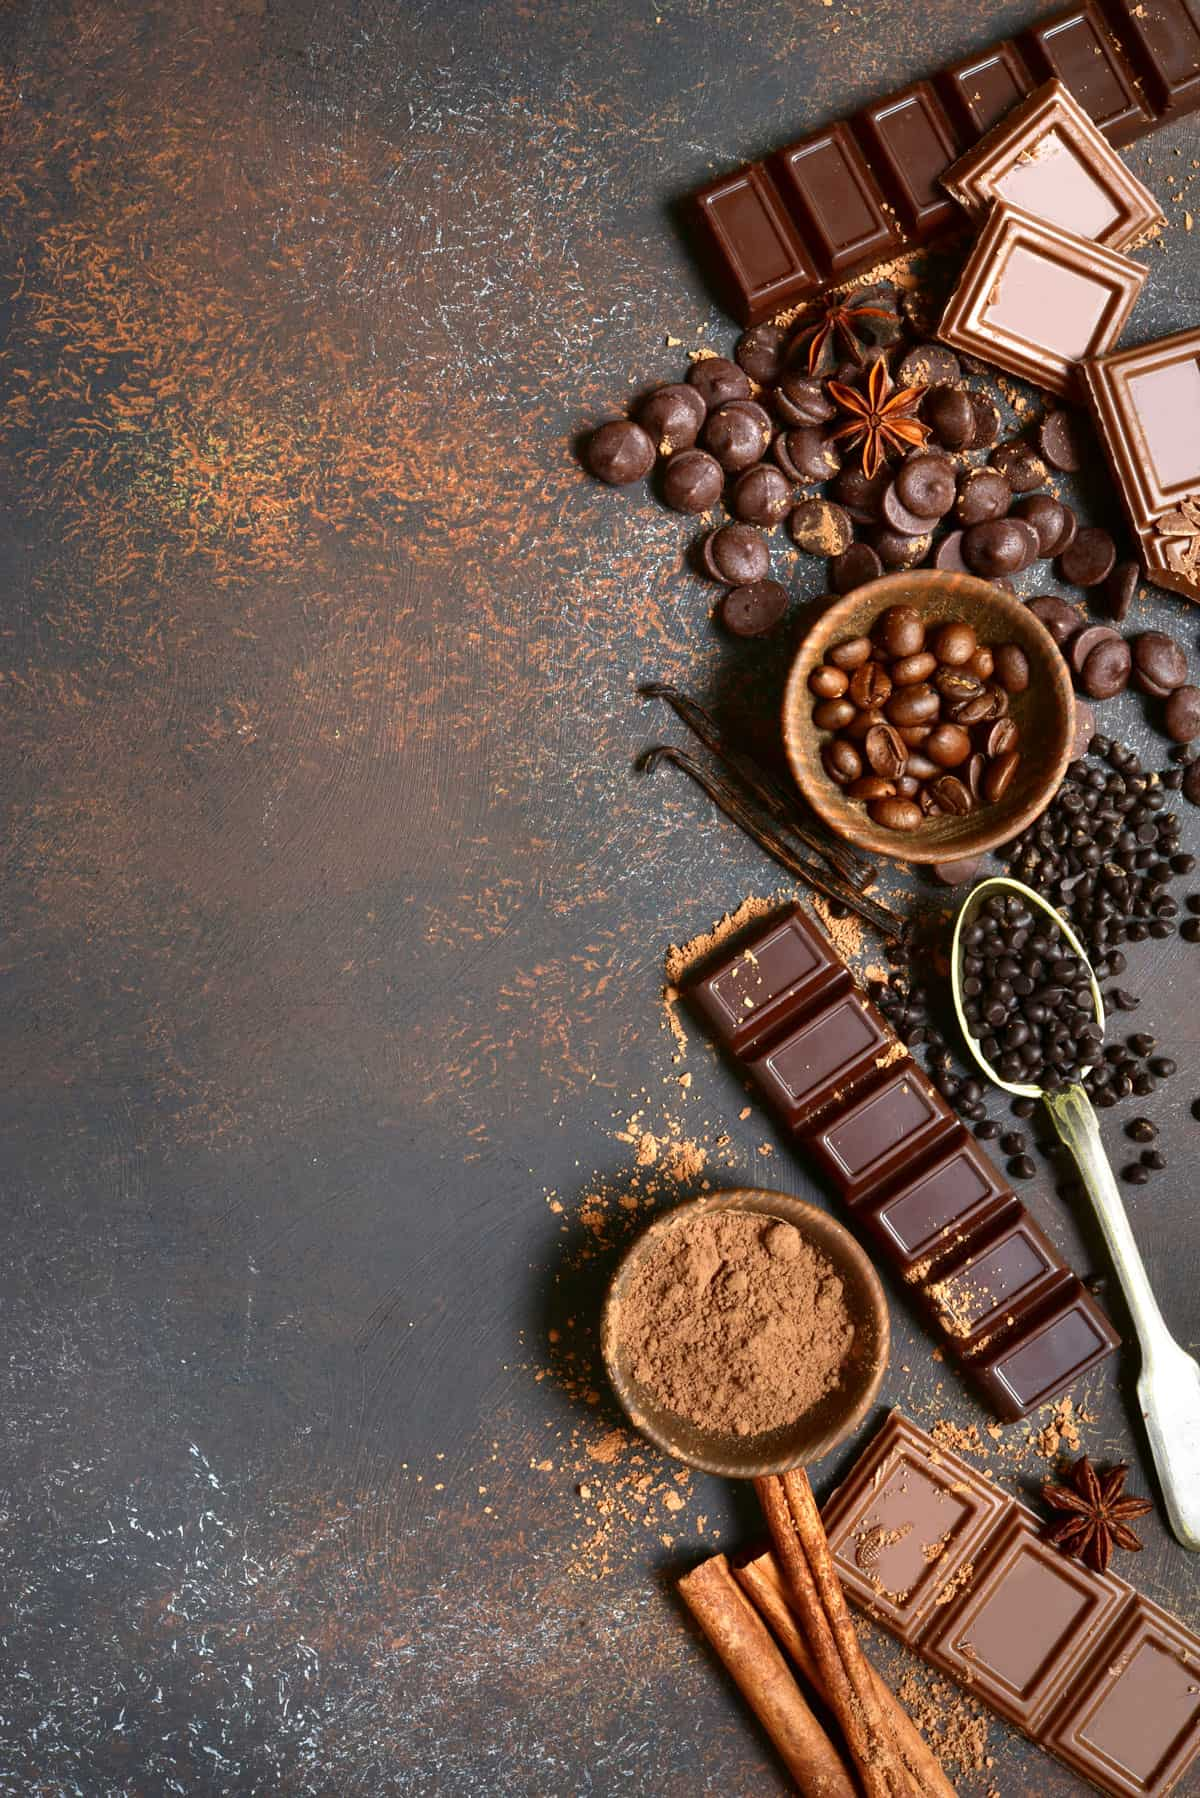 Ingredients to make vegan chocolate recipes on a gray background.